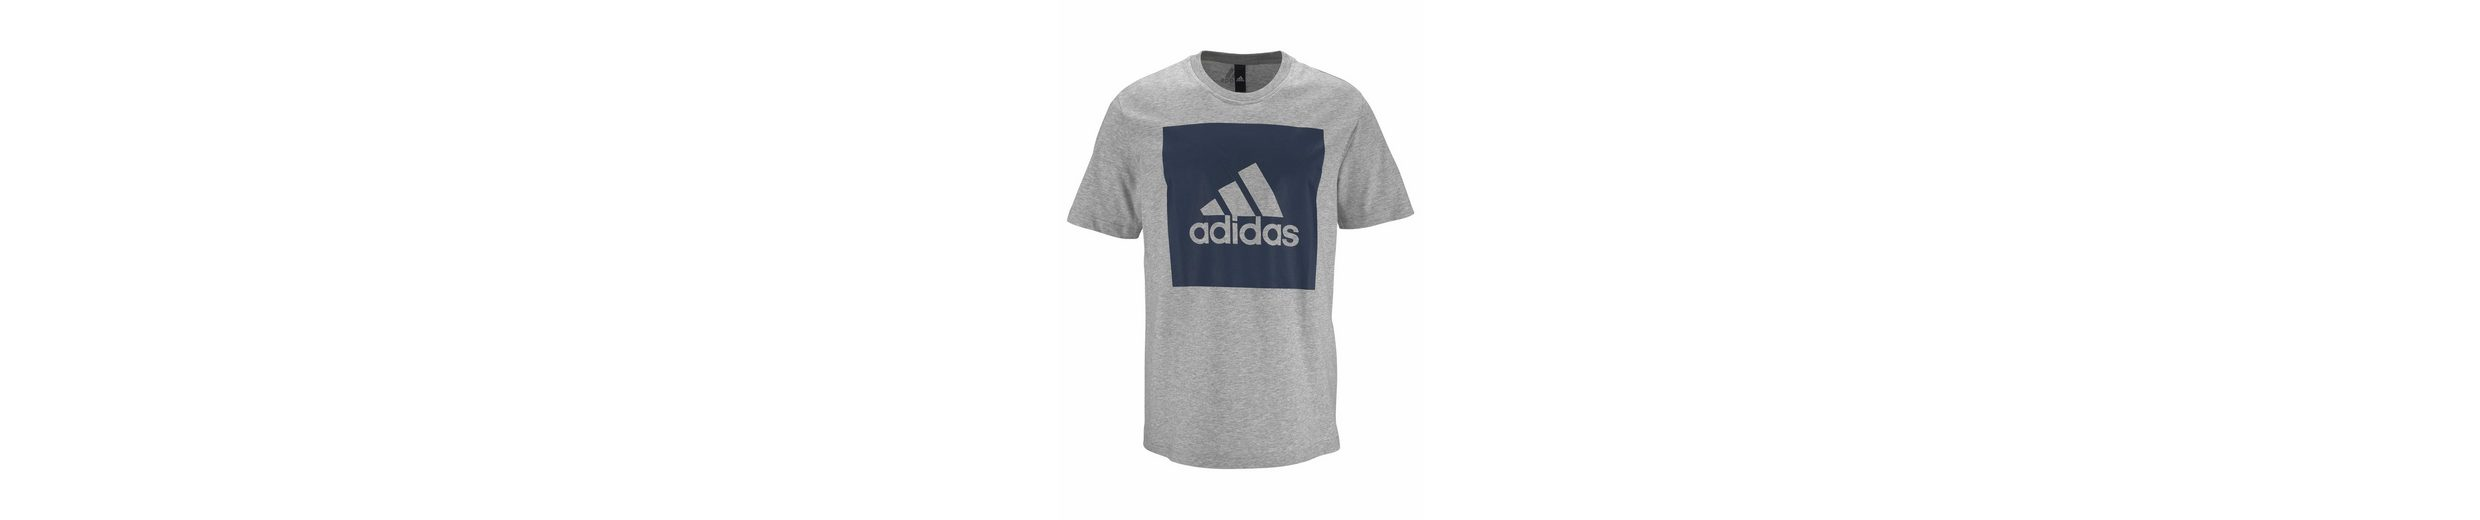 adidas Performance T-Shirt ESSENTIALS BIG BOX LOGO TEE Eastbay Günstigen Preis RPbraRrtiS